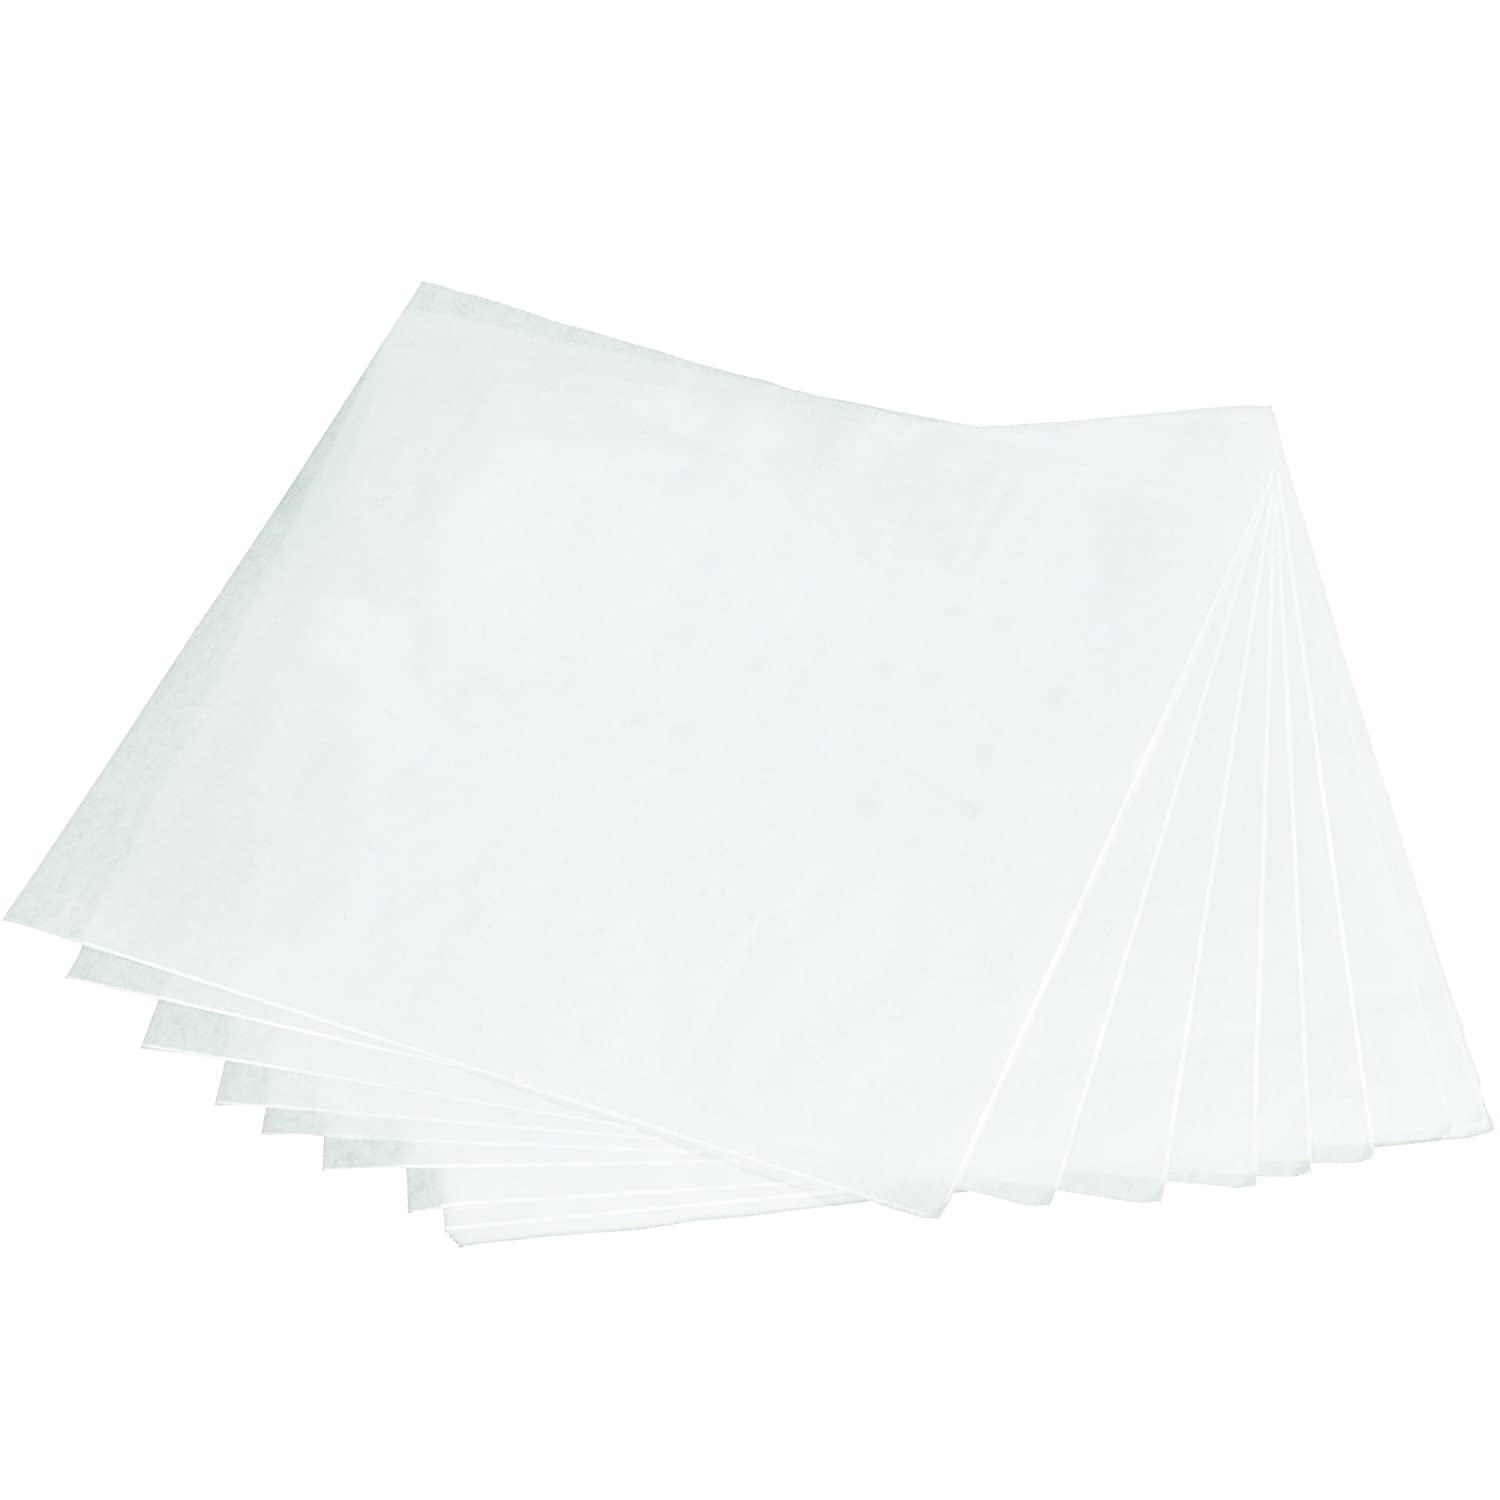 Partners Brand PBPS182440W Butcher Paper Sheets 18 x 24 White Pack of 1250